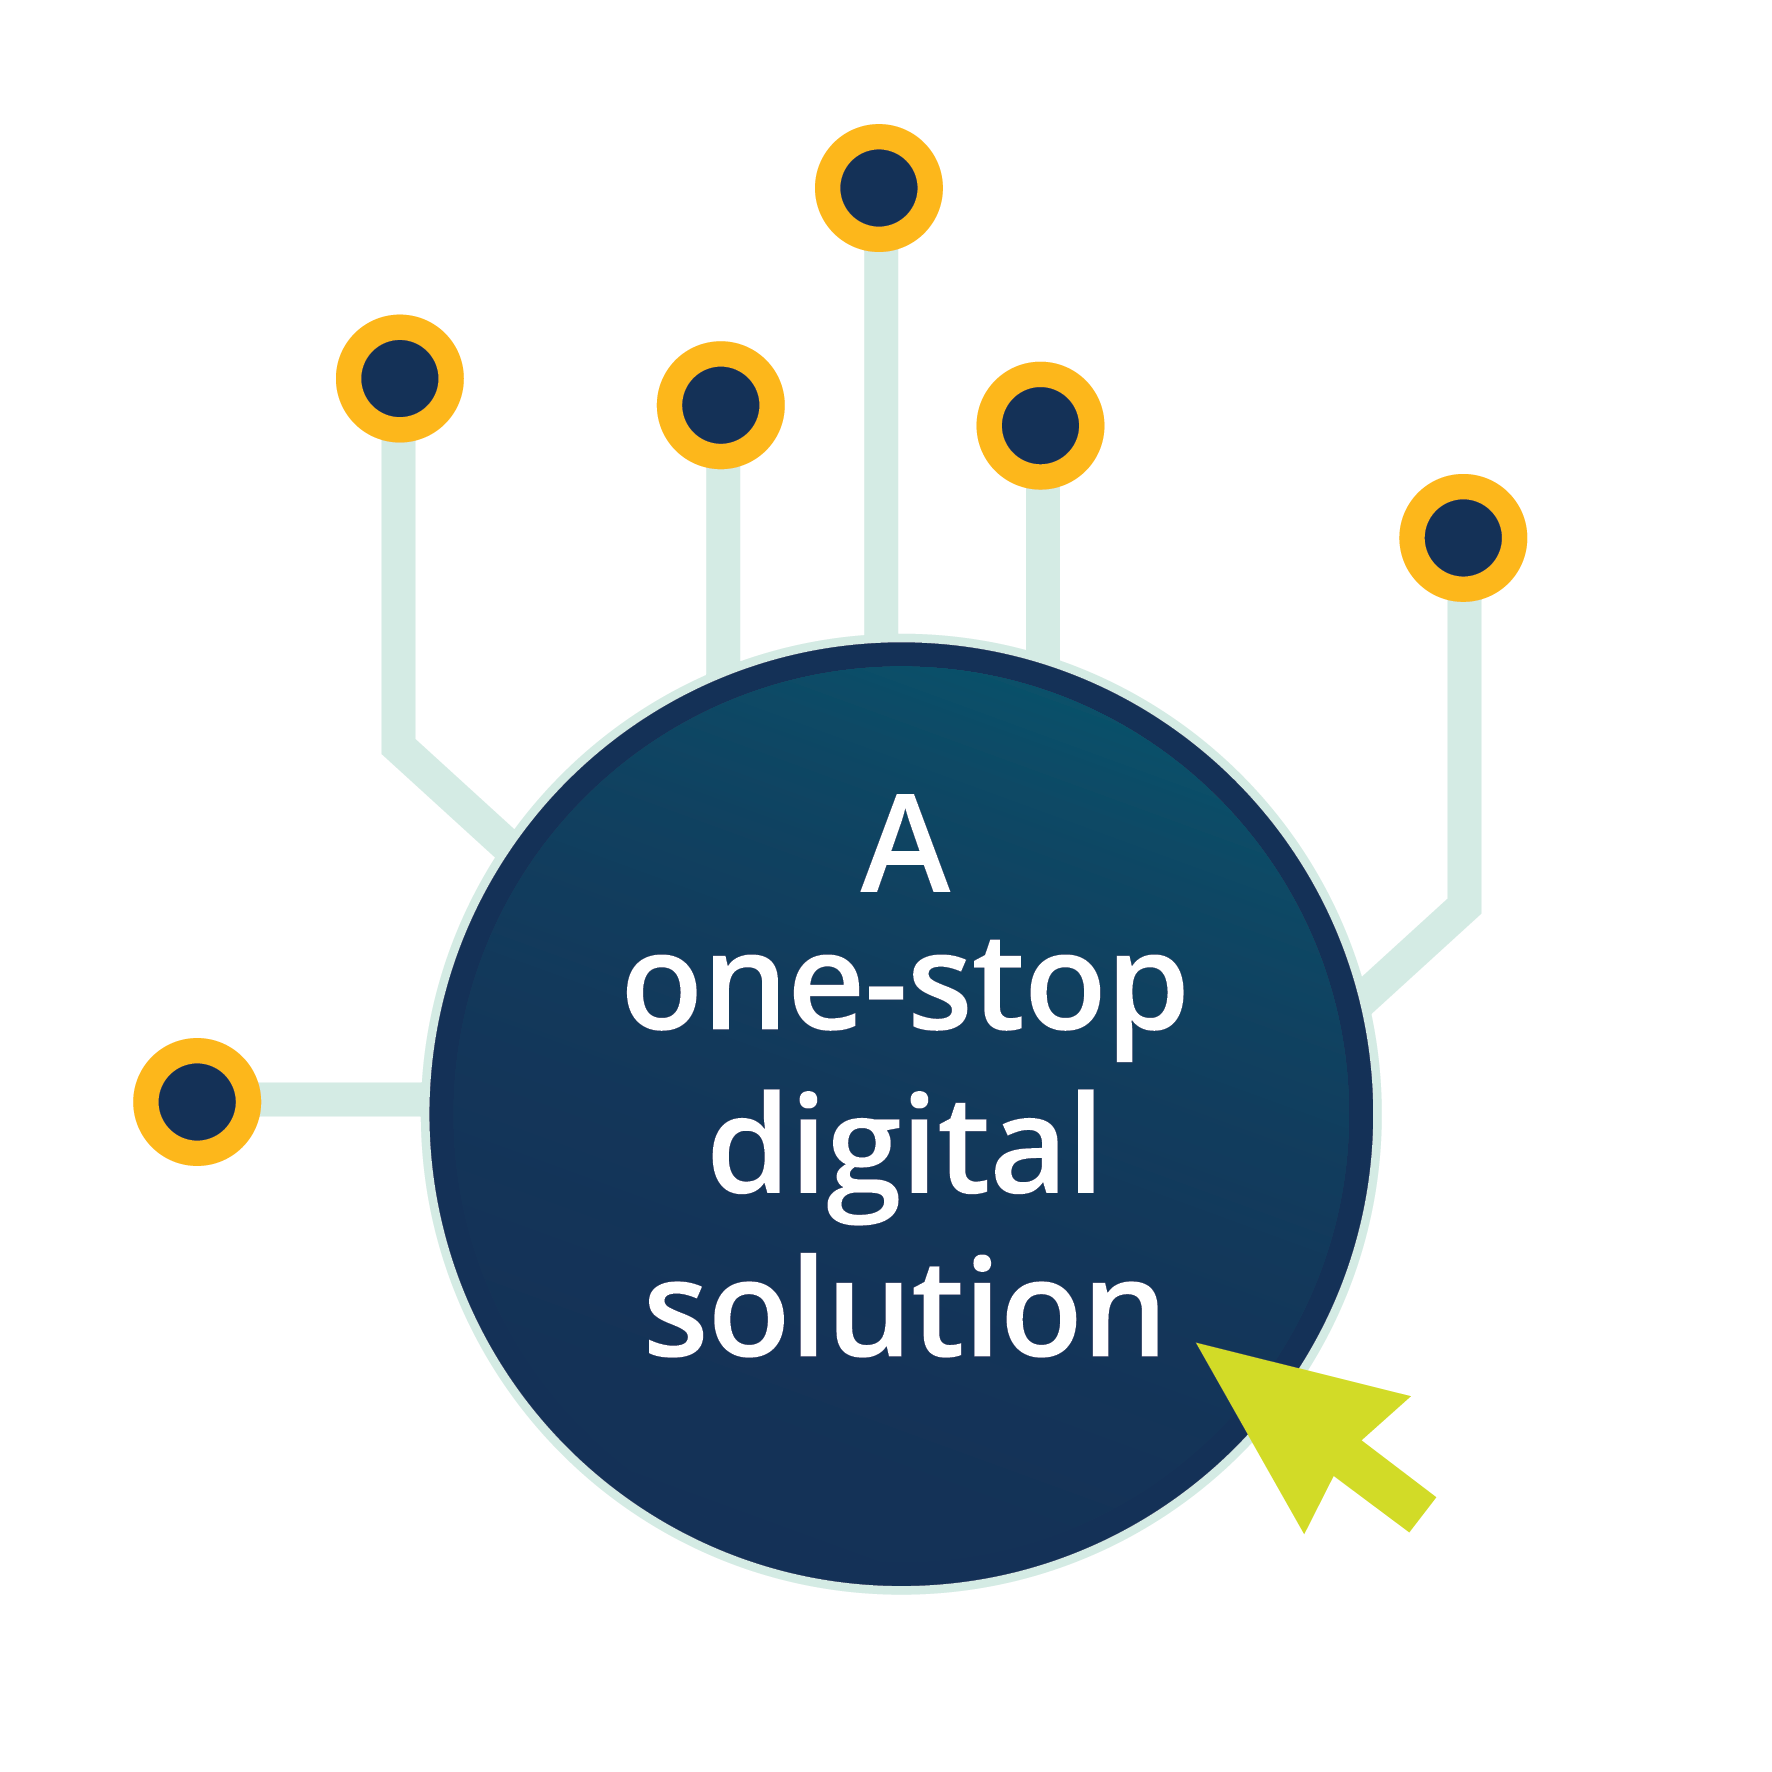 One-stop digital solution icon